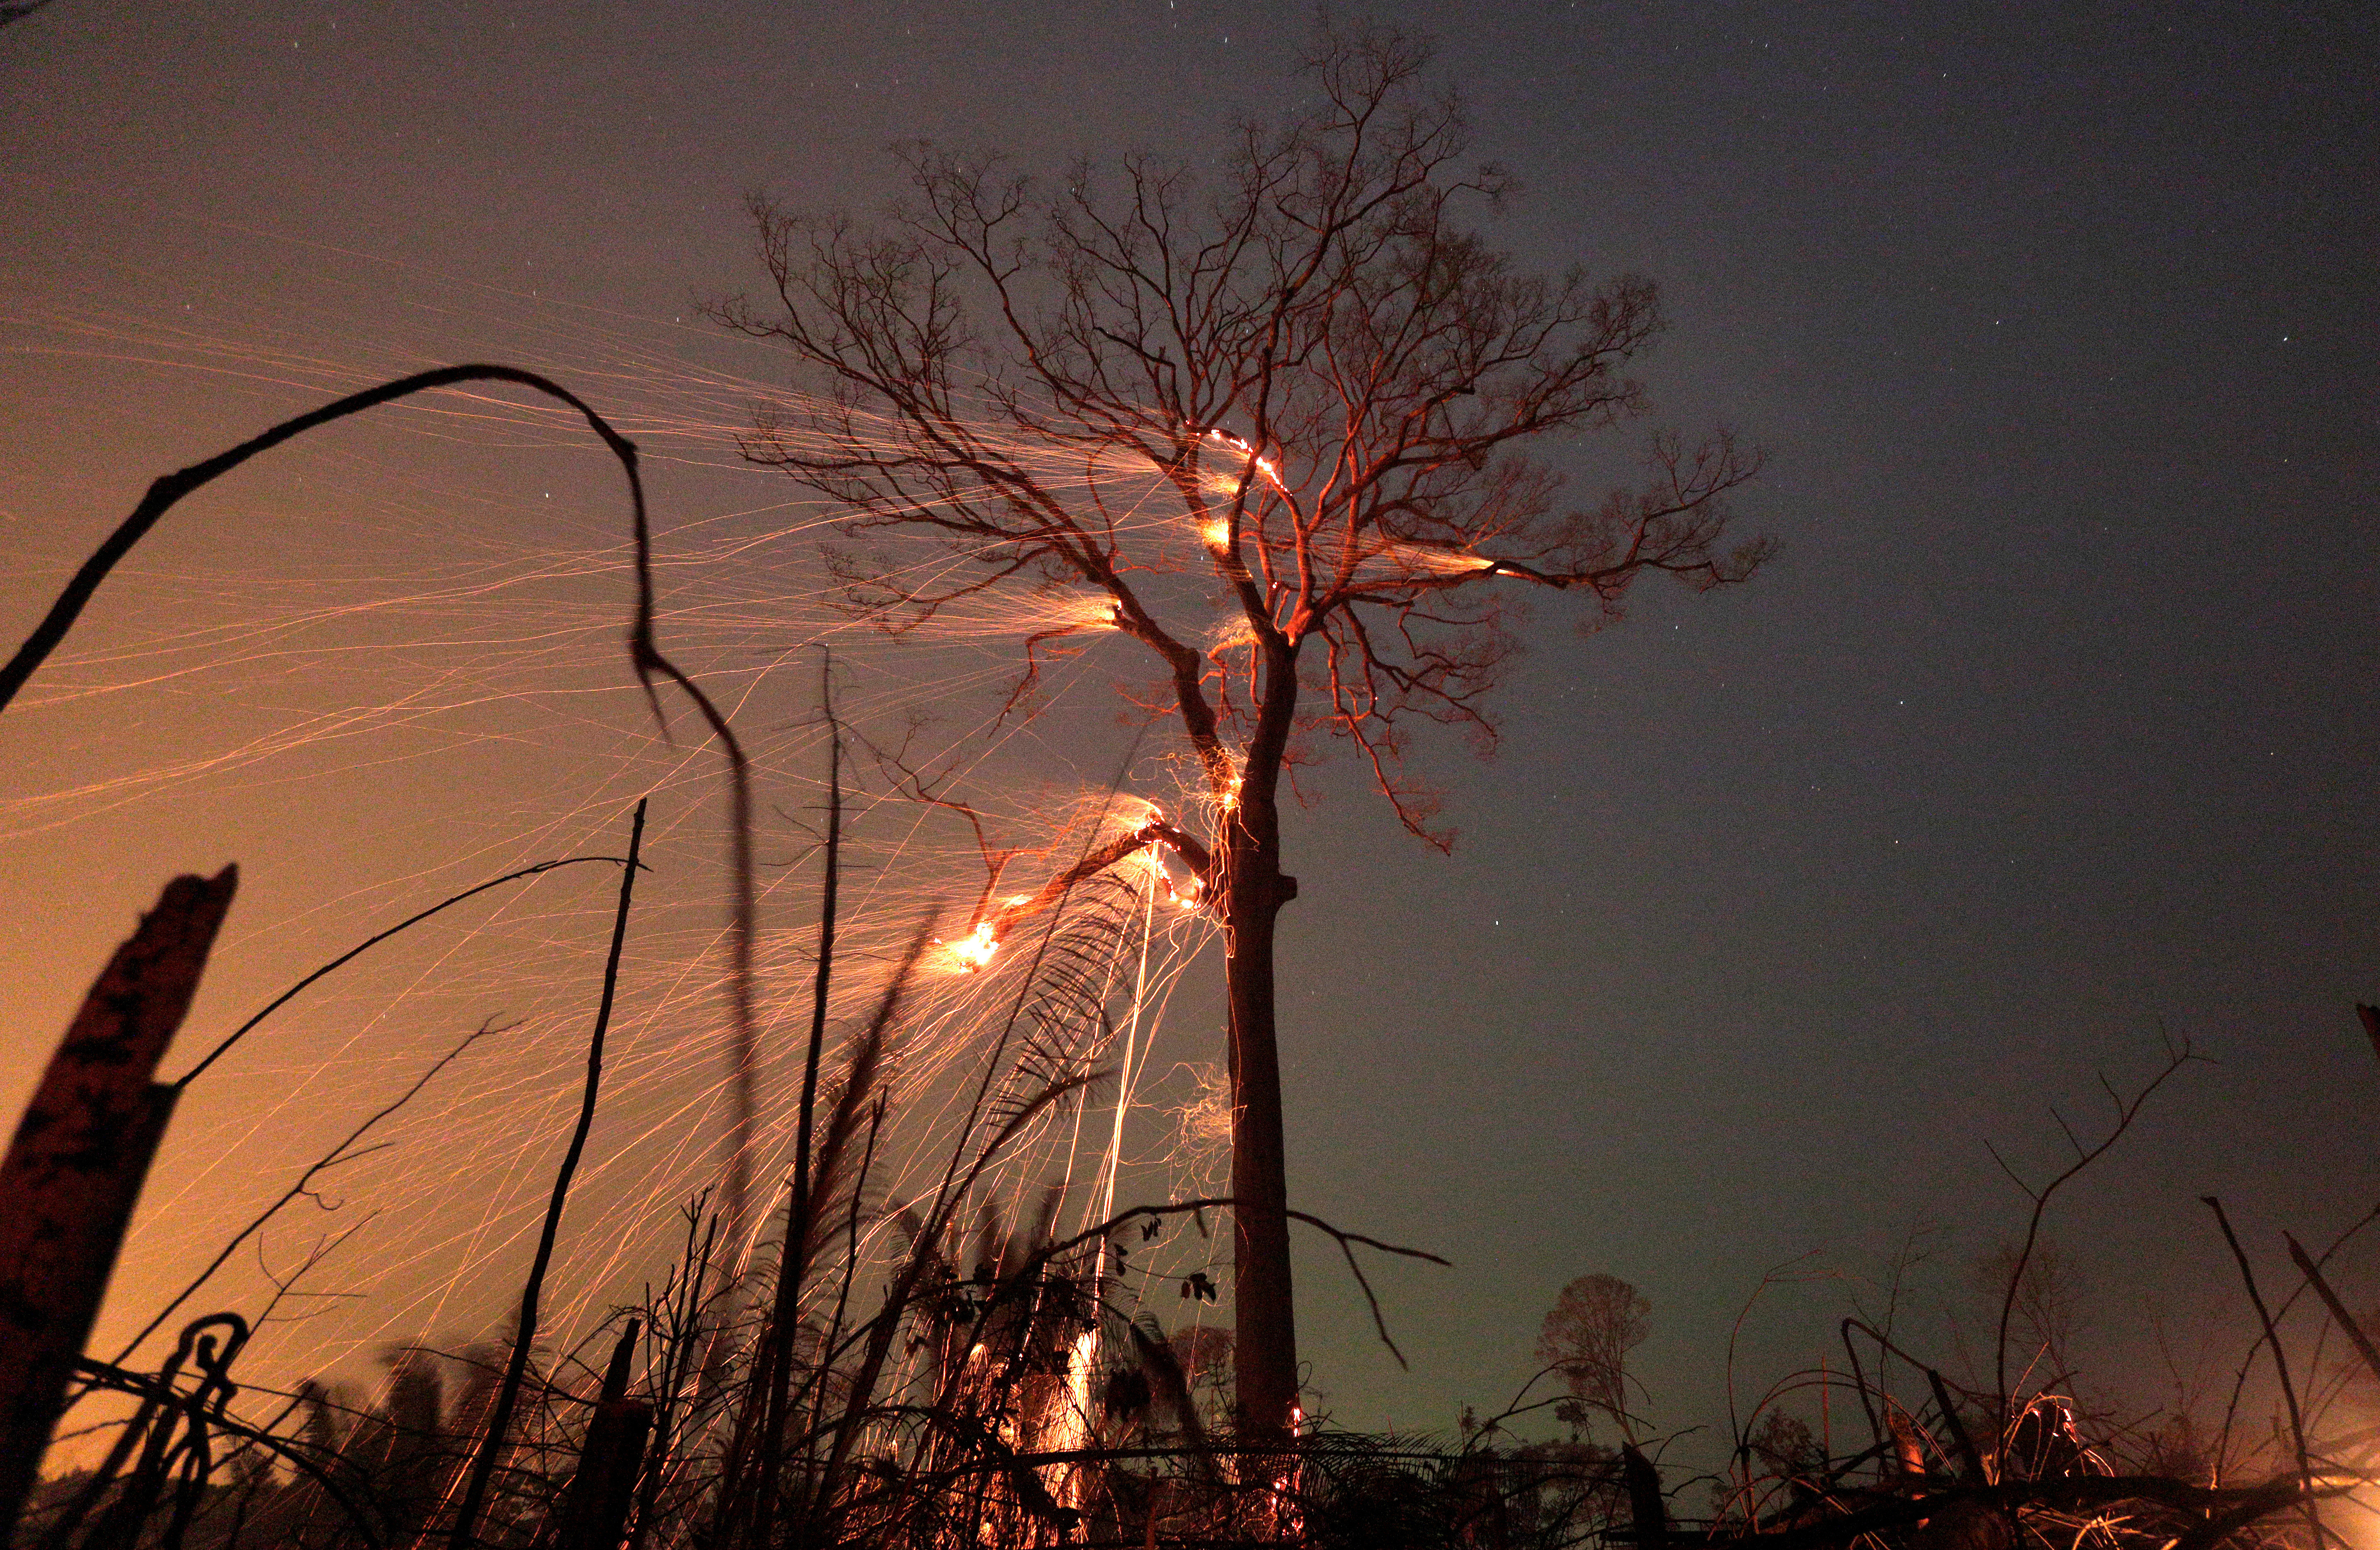 A tree in the Amazon jungle burns as it is cleared by farmers in Rio Pardo, Rondonia, Brazil, September 15, 2019. Picture taken September 15, 2019